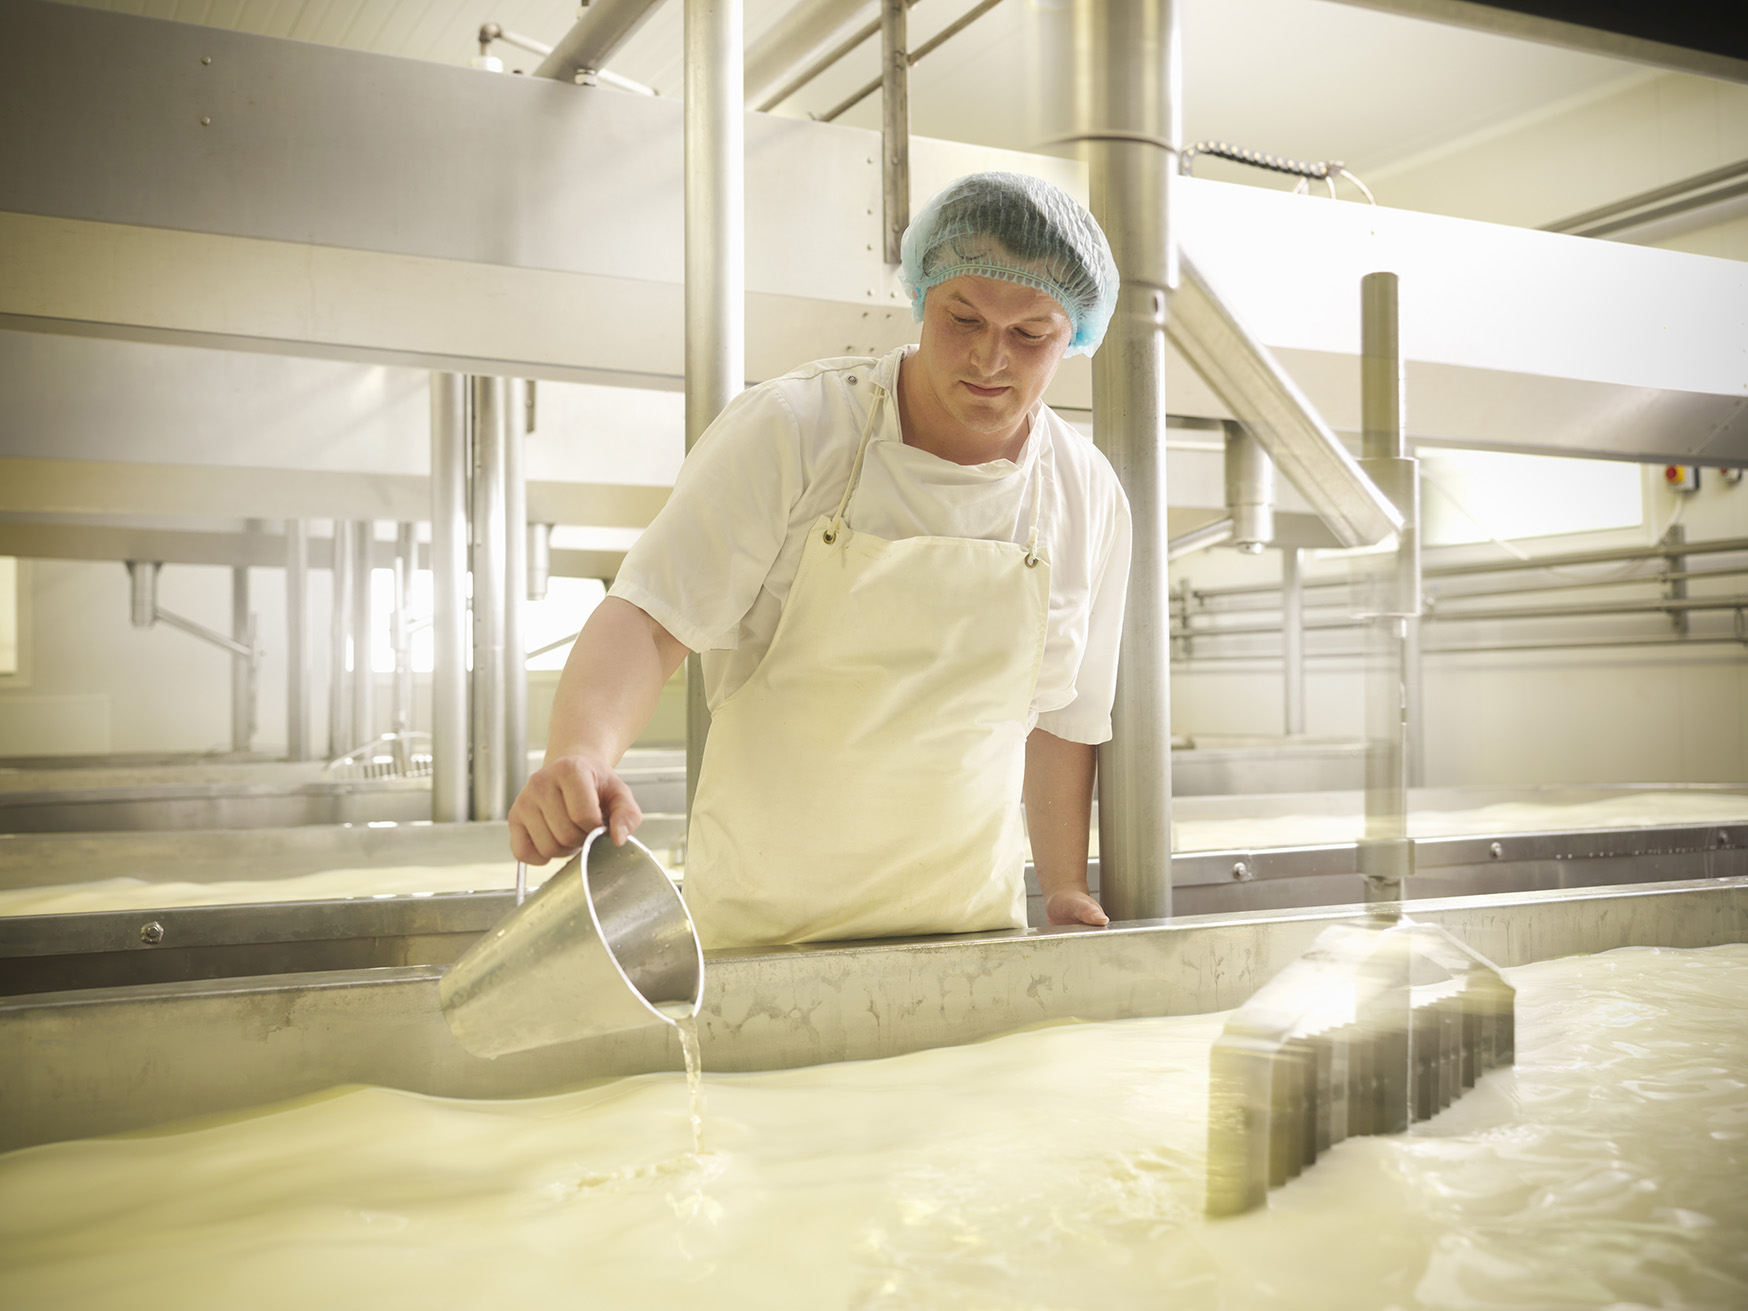 Man working with dairy products